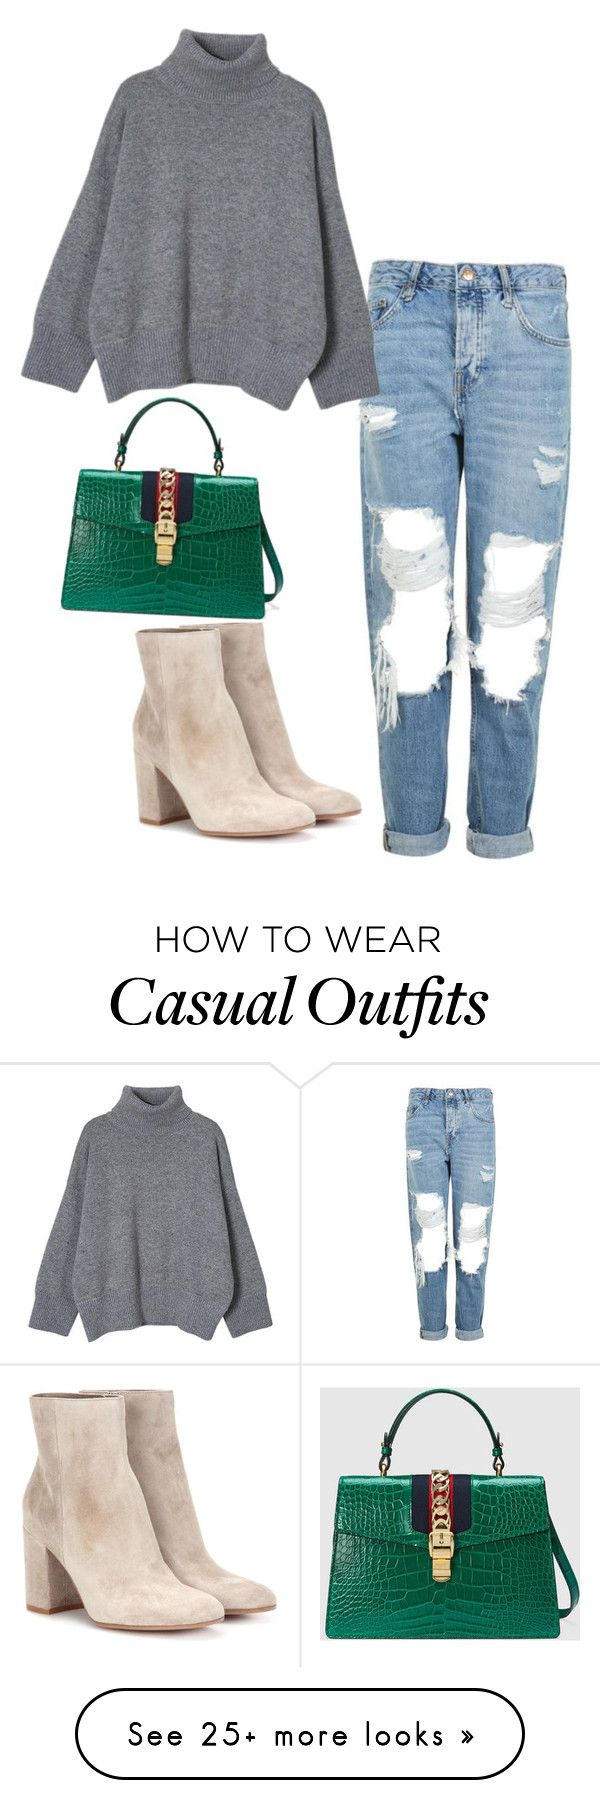 """Casual"" by ivanabeauchamp on Polyvore featuring Topshop, Gianvito Rossi and Gucci"